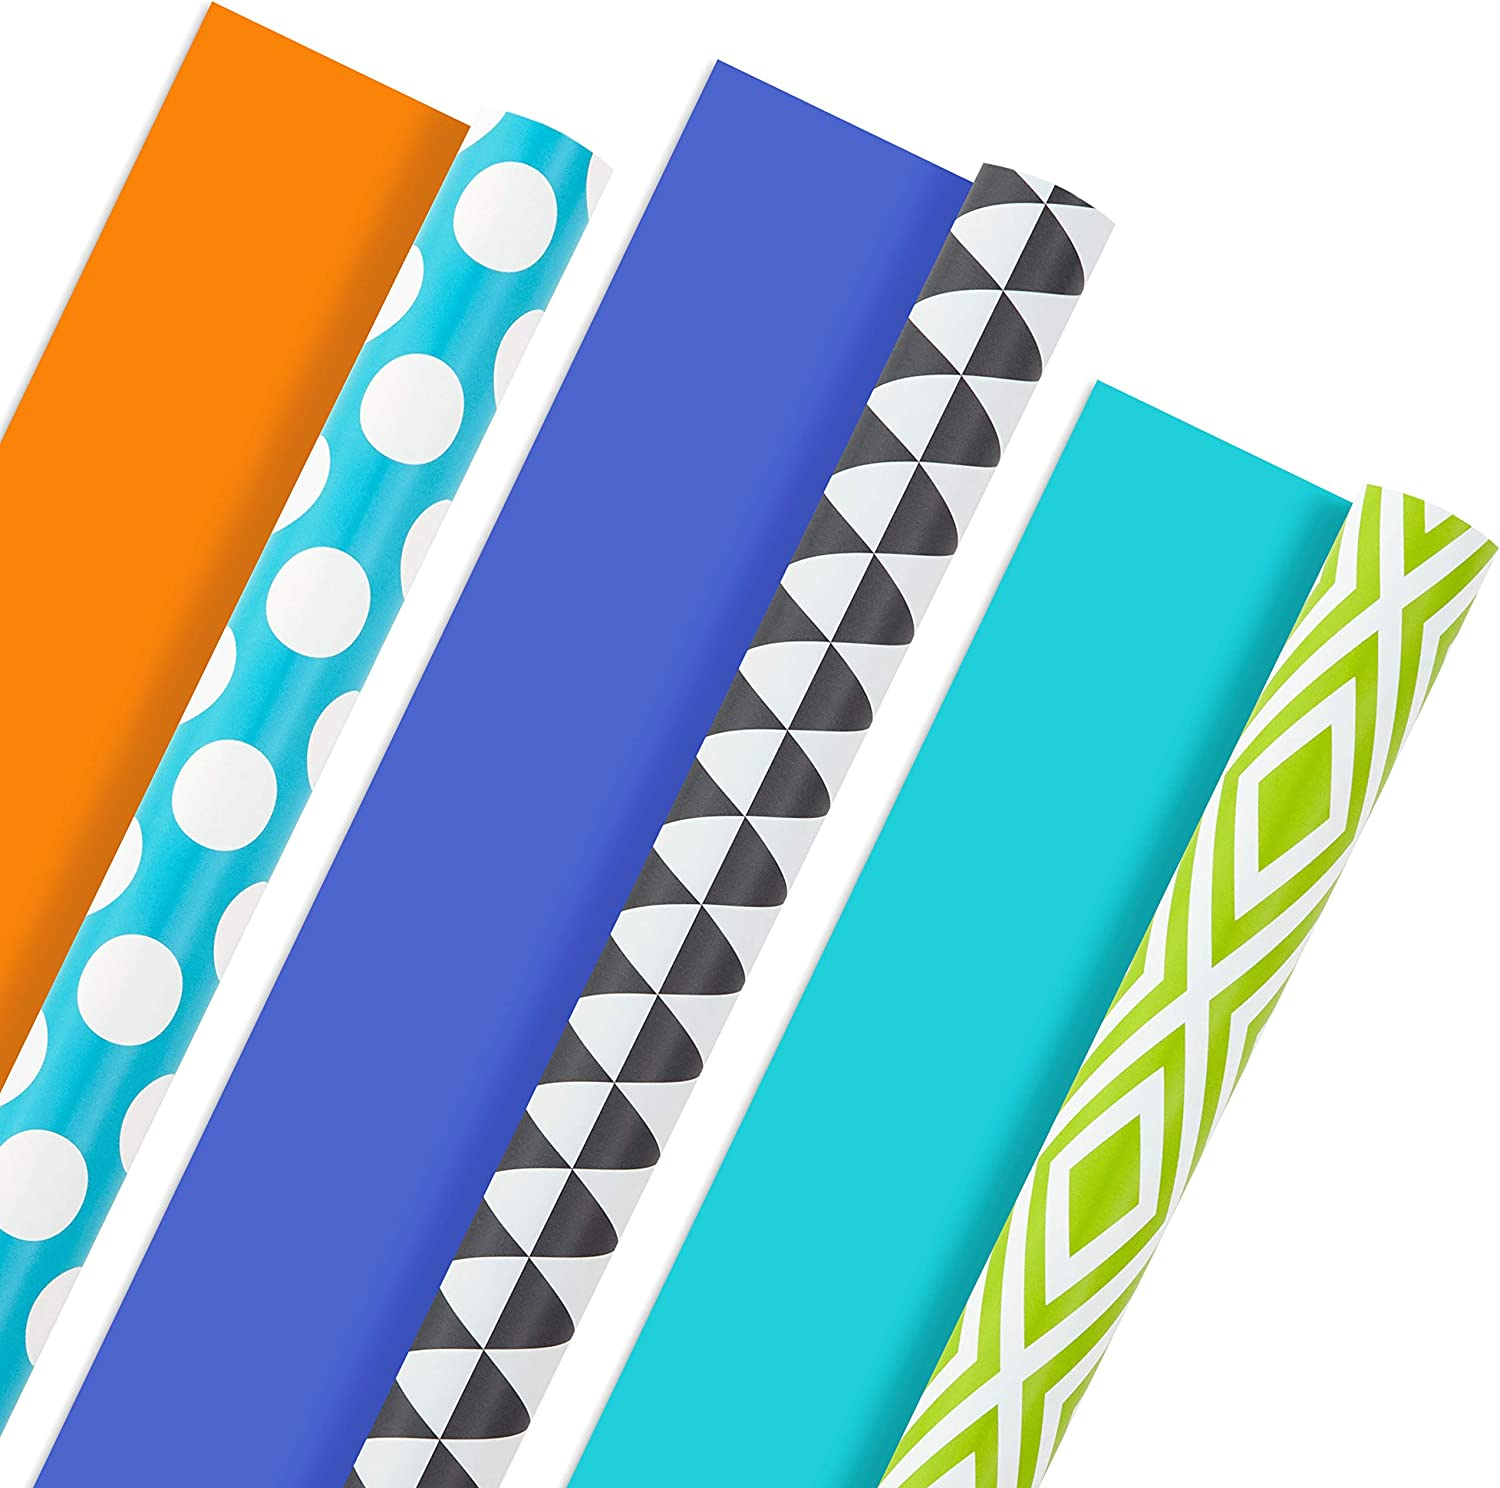 Hallmark All Occasion Reversible Wrapping Paper Bundle - Solids & Dots, Diamonds, Triangles (3 Rolls; 75 sq. ft. ttl) Yellow, Orange, Blue, Black and White